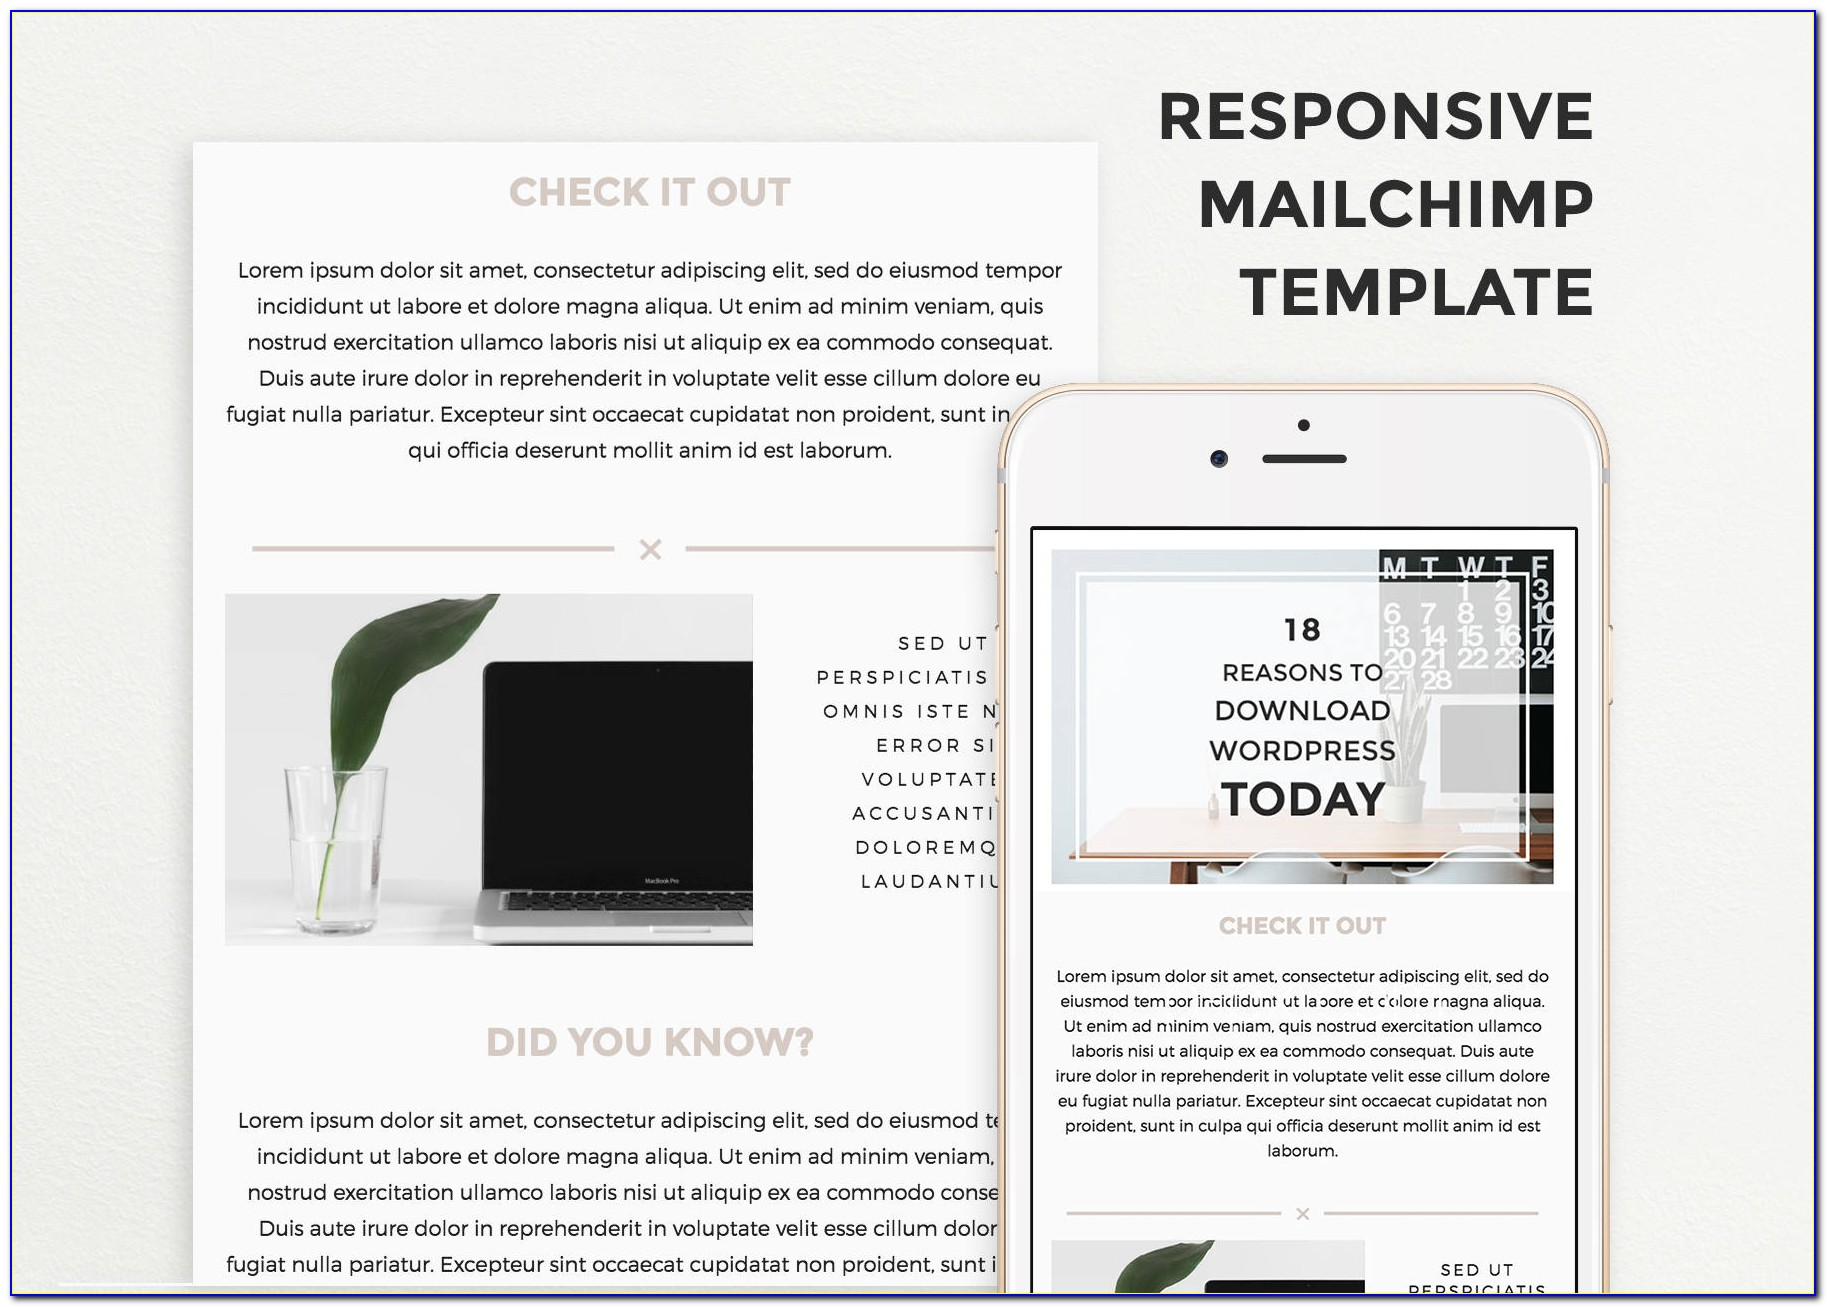 Free Mailchimp Responsive Email Templates